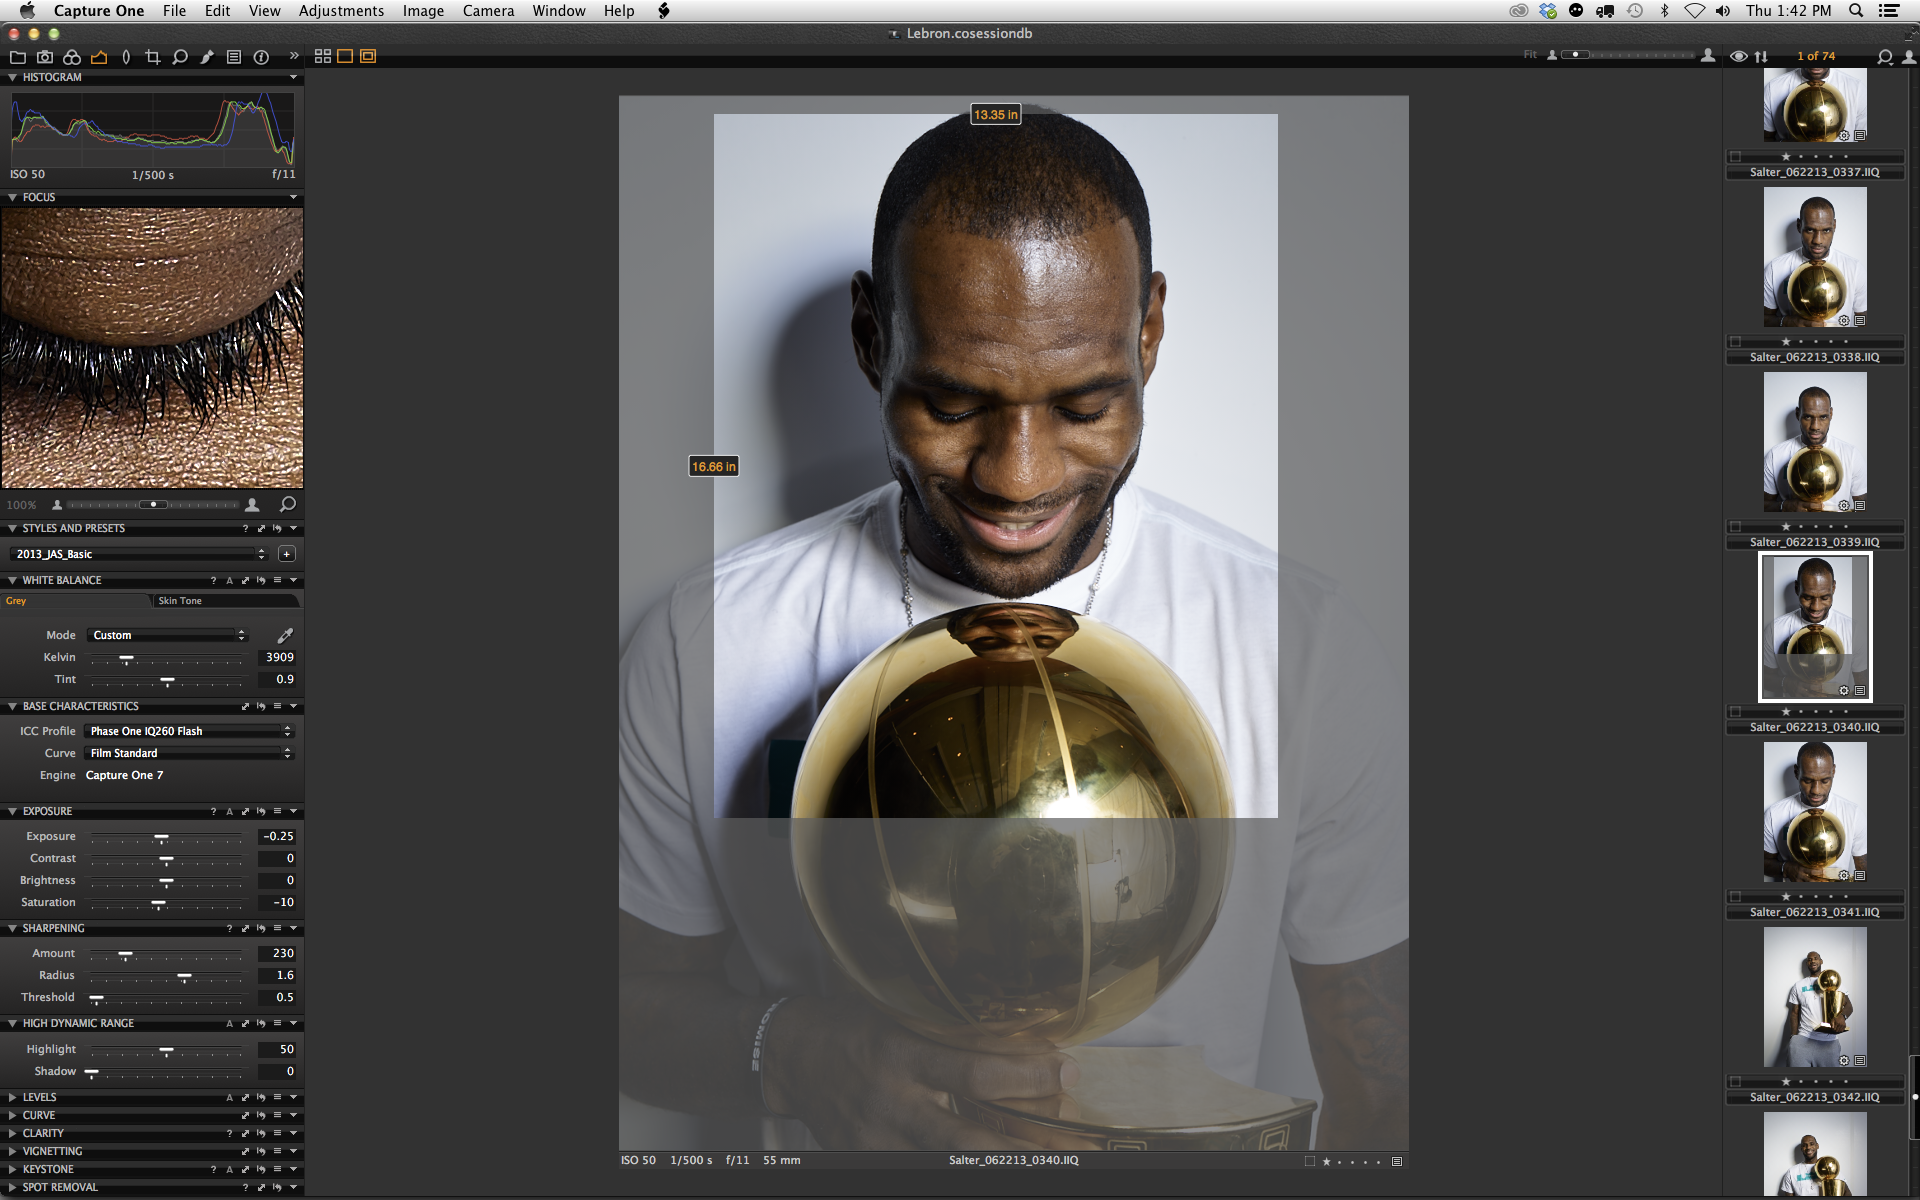 Phase One IQ260 | LeBron James